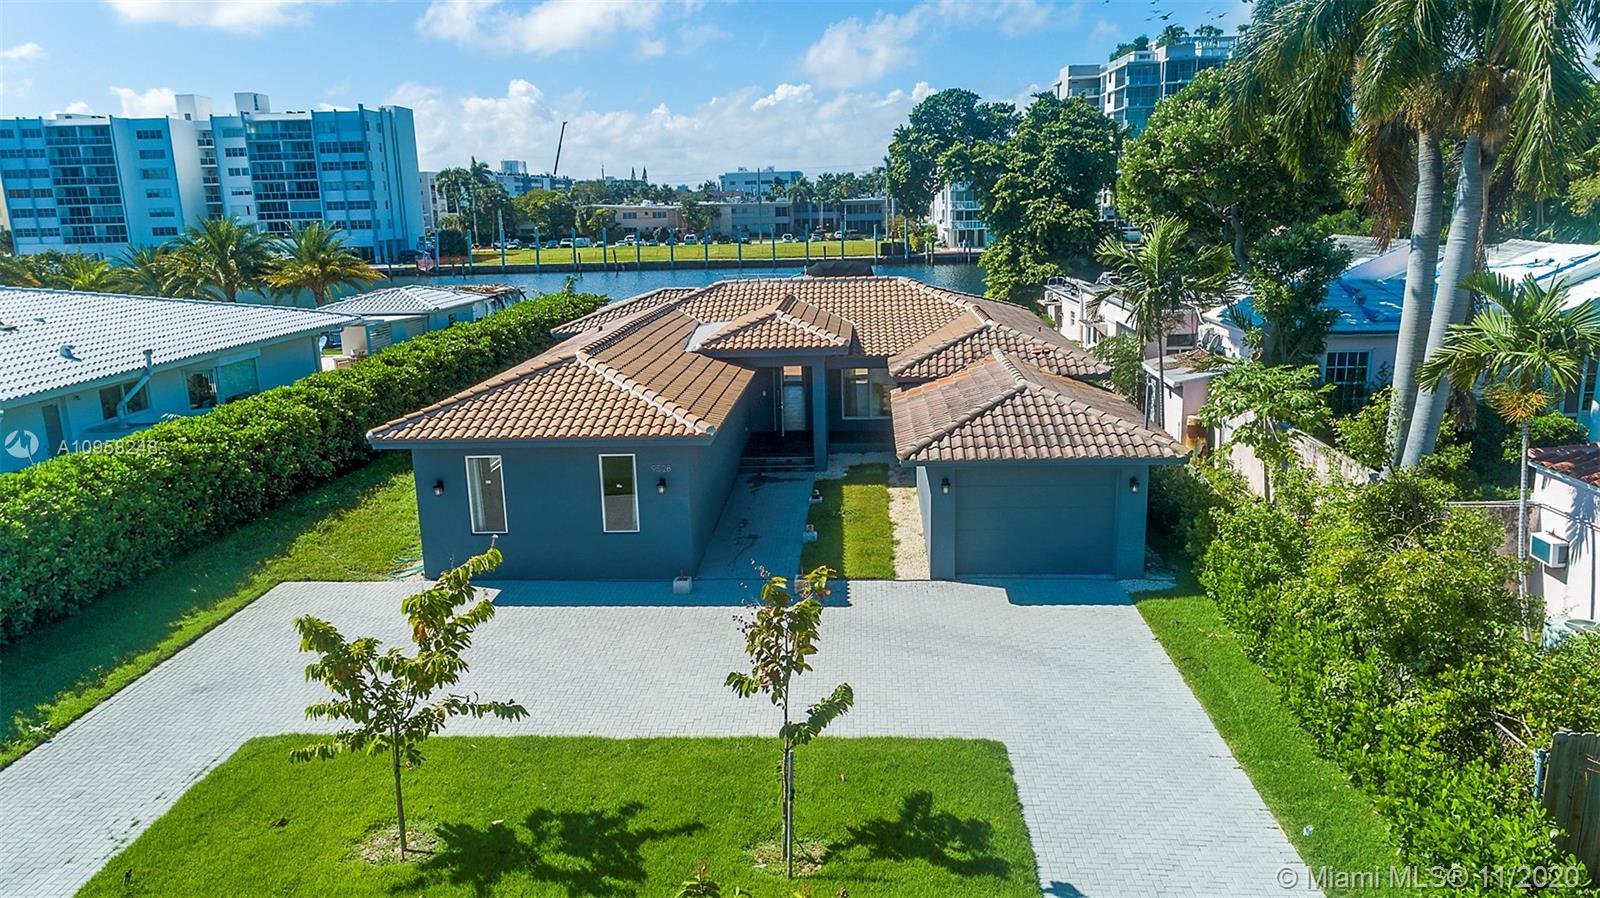 Gorgeous home located on 1.5 lots on the Intercoastal in the beach town of Surfside. Completely reno